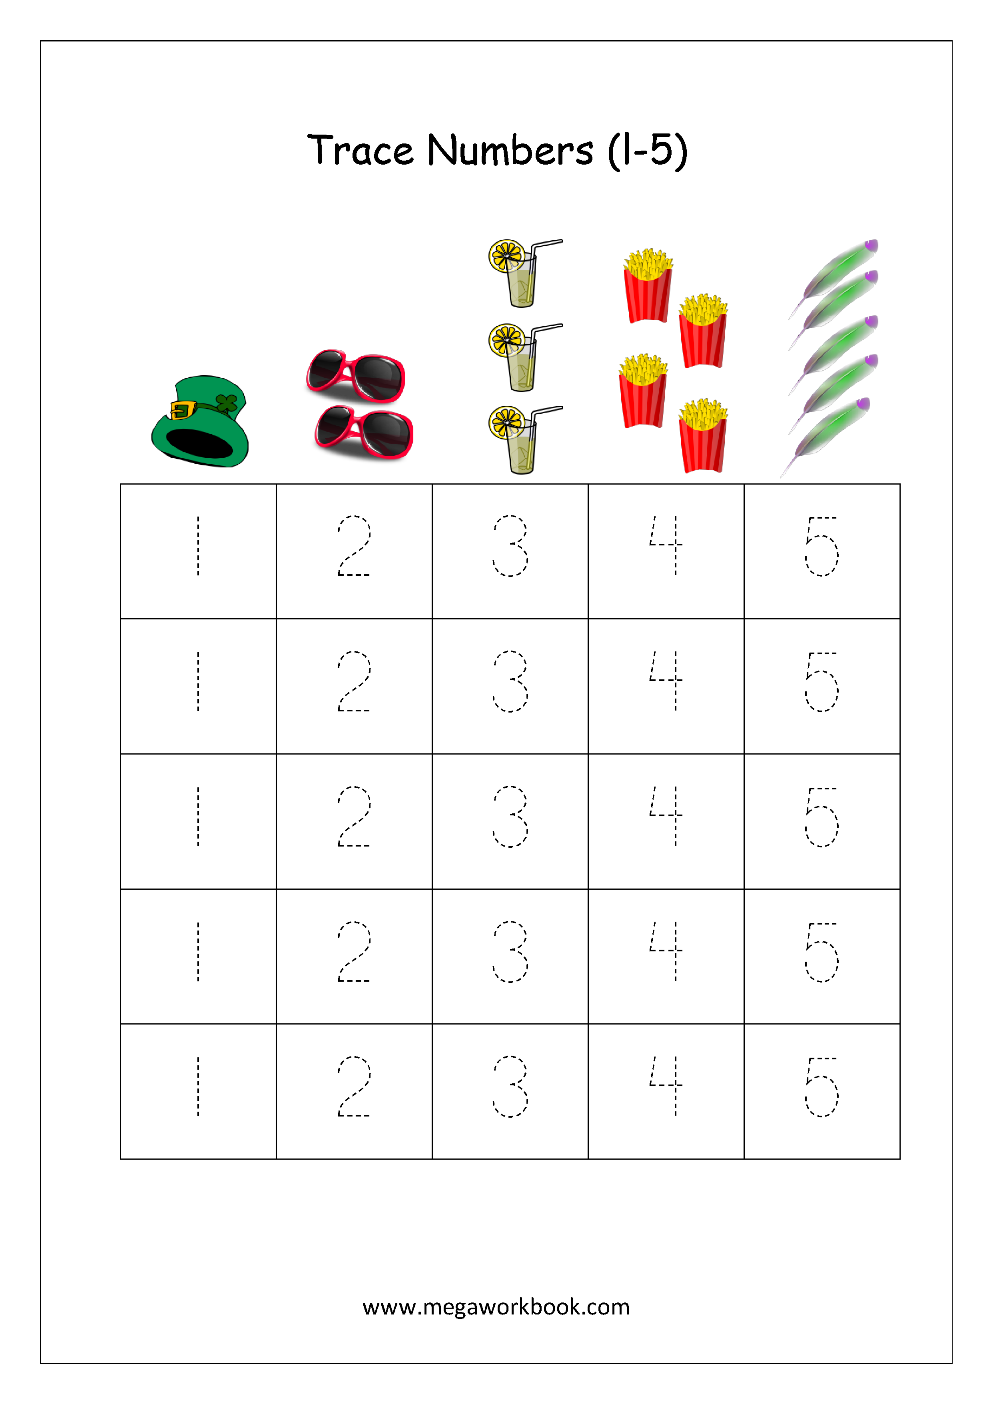 worksheet Tracing Number 5 Worksheets math worksheet number tracing 1 to 5 pinterest check our free printable tracingwriting worksheets teach numbers your child